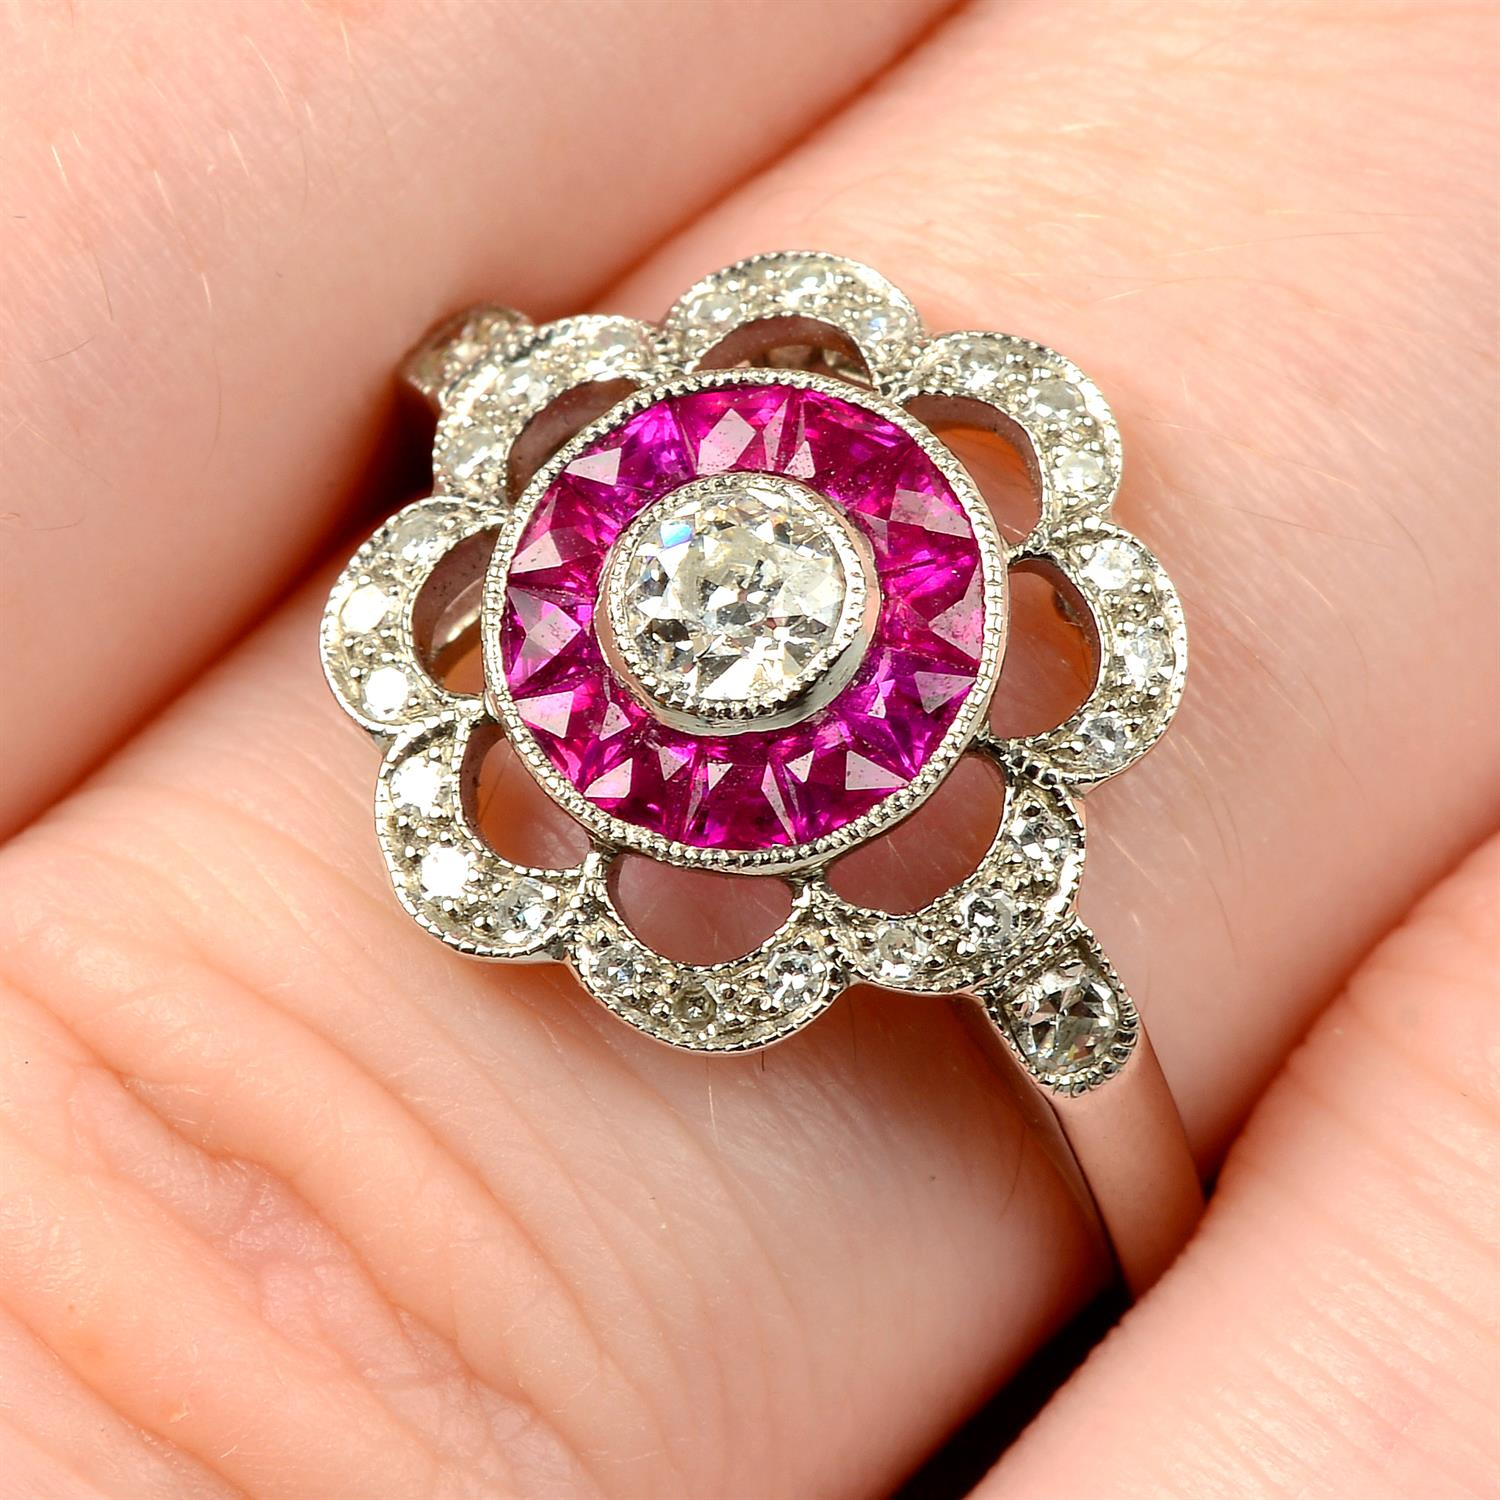 An 18ct gold diamond and French-cut ruby floral cluster ring.